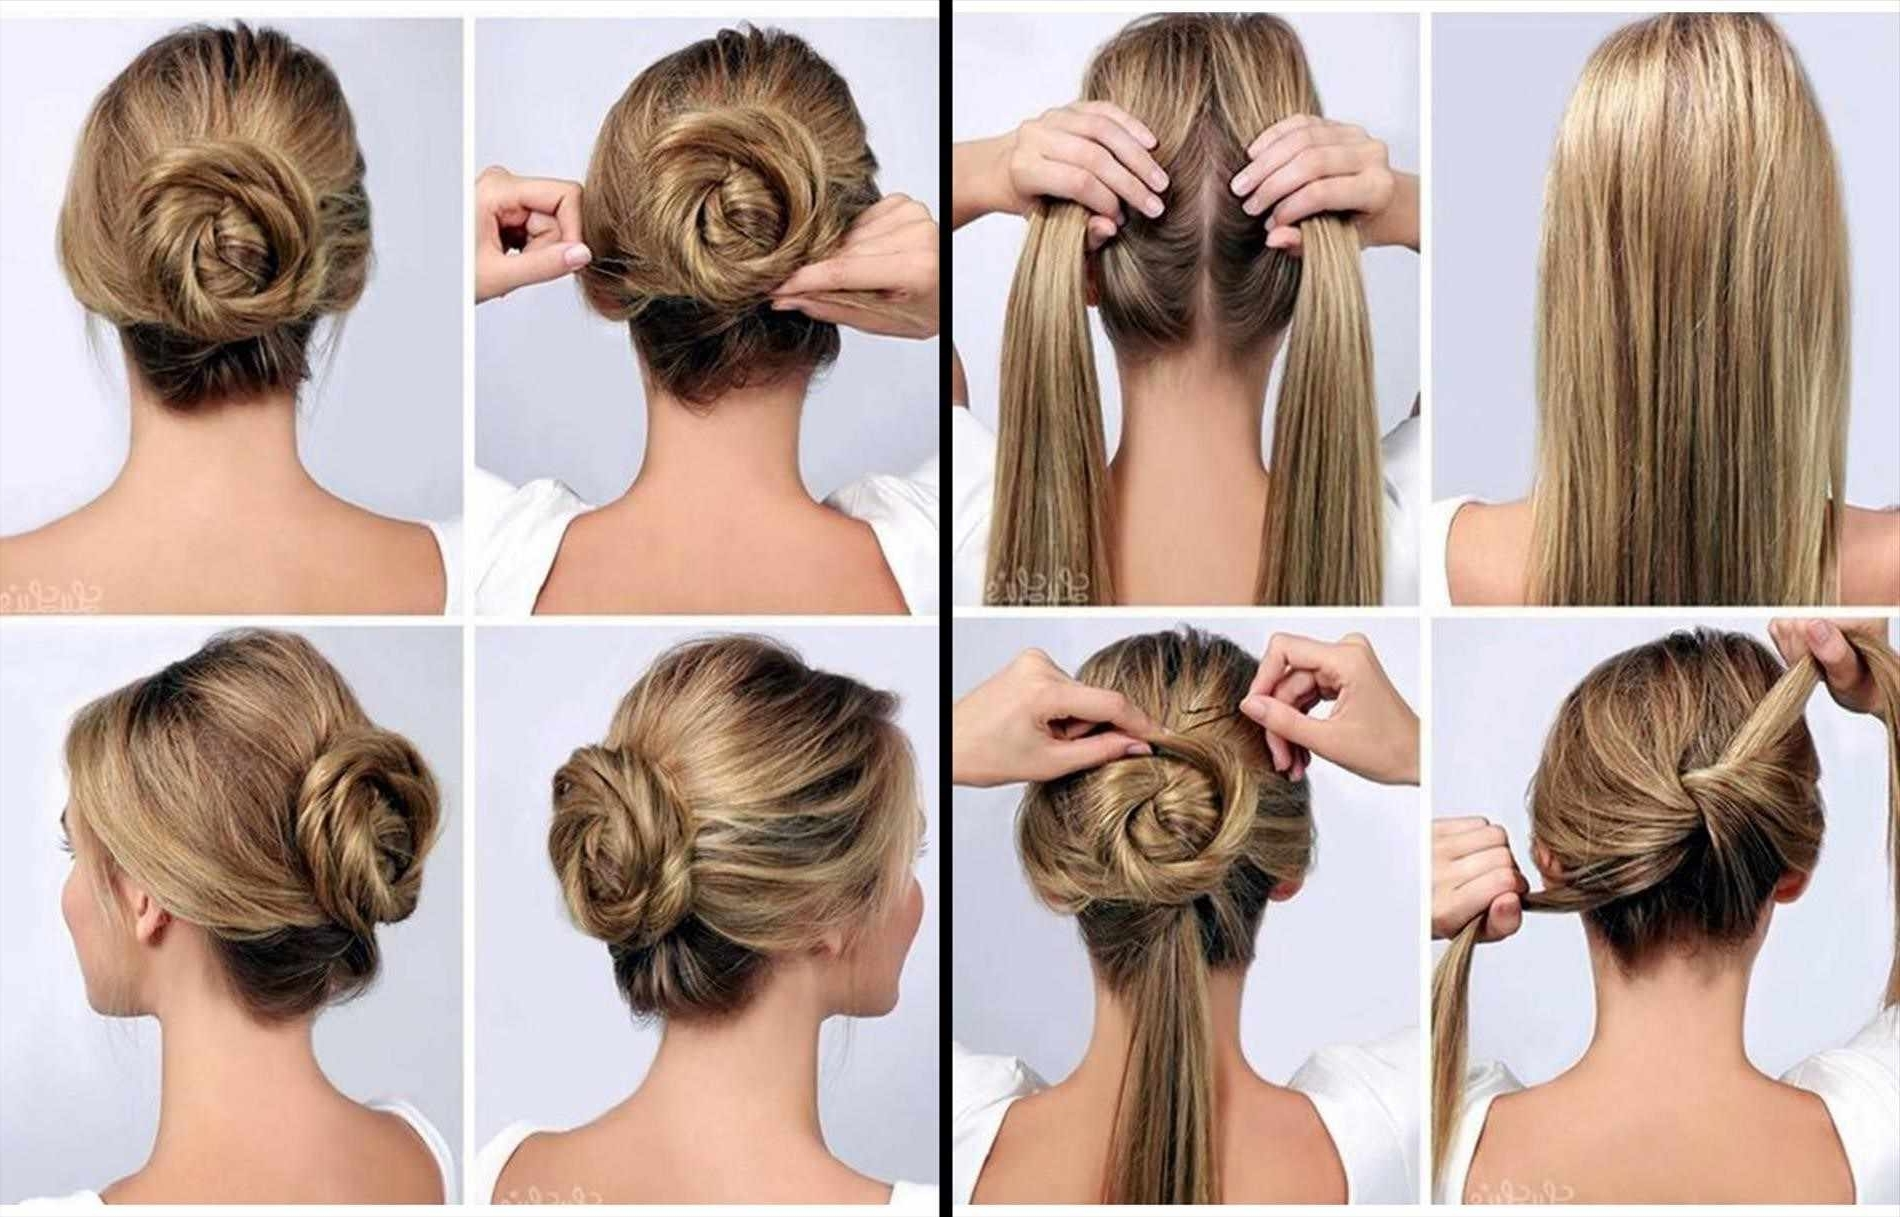 Youtube Trendy Updo Hairstyles Tutorials Easy Cute Hair Trendy Low Within Easy Low Bun Updo Hairstyles (Gallery 14 of 15)